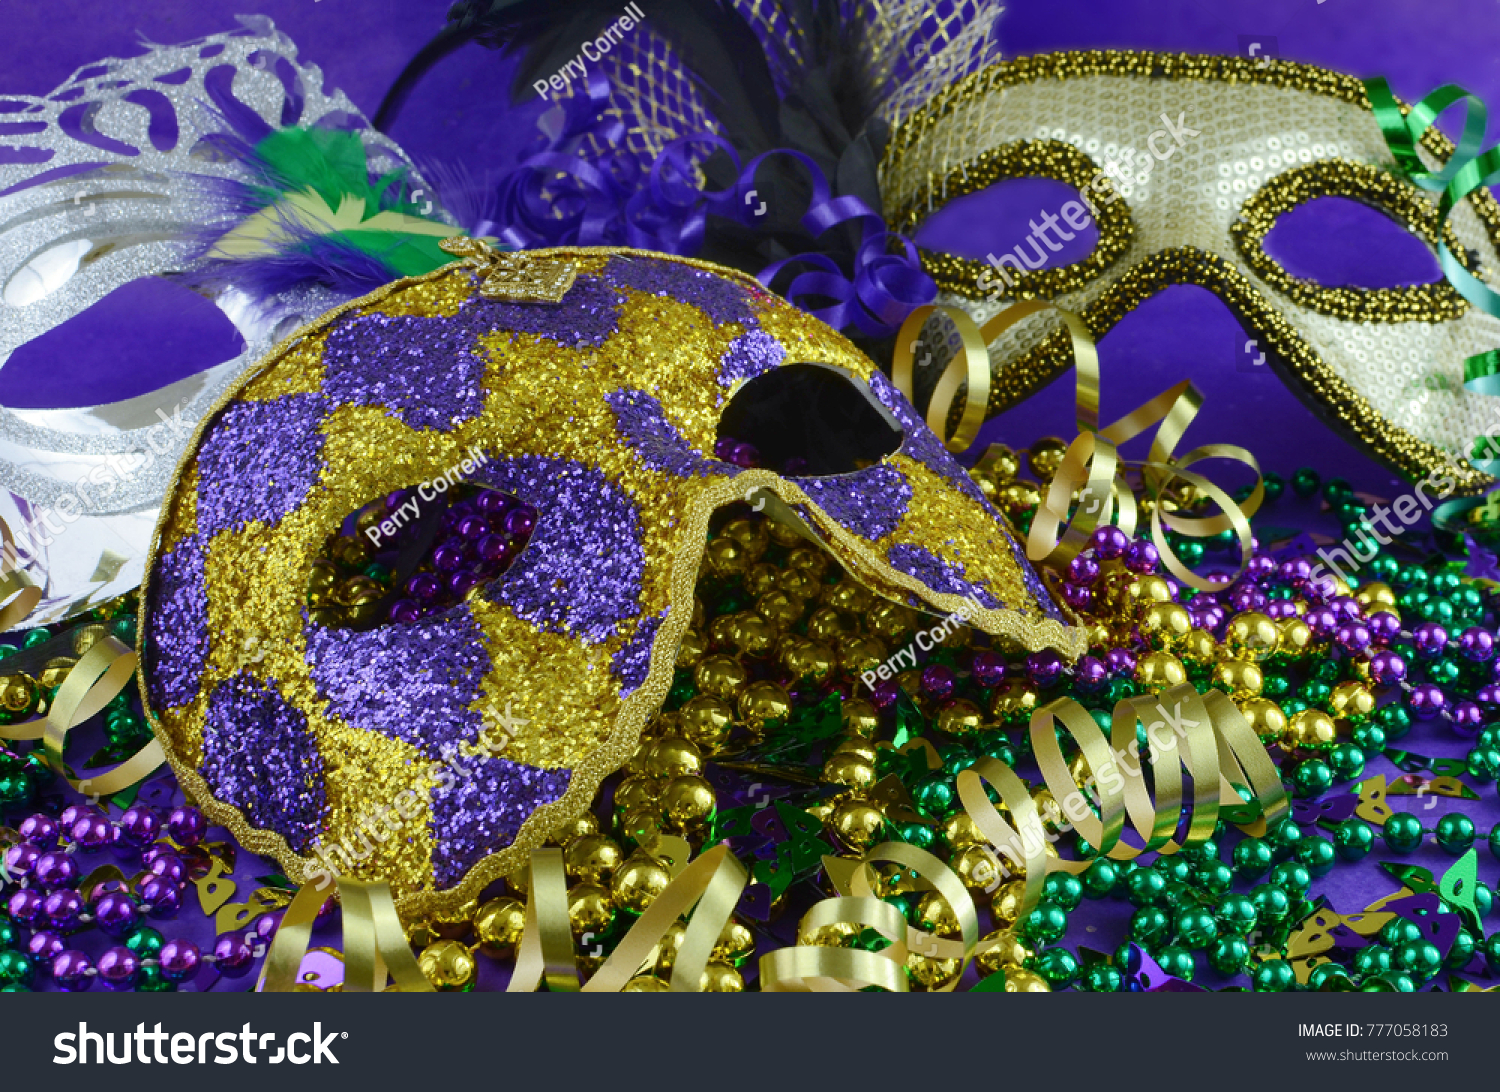 photo stock of gras party mask and image carnival free room royalty mardi beads